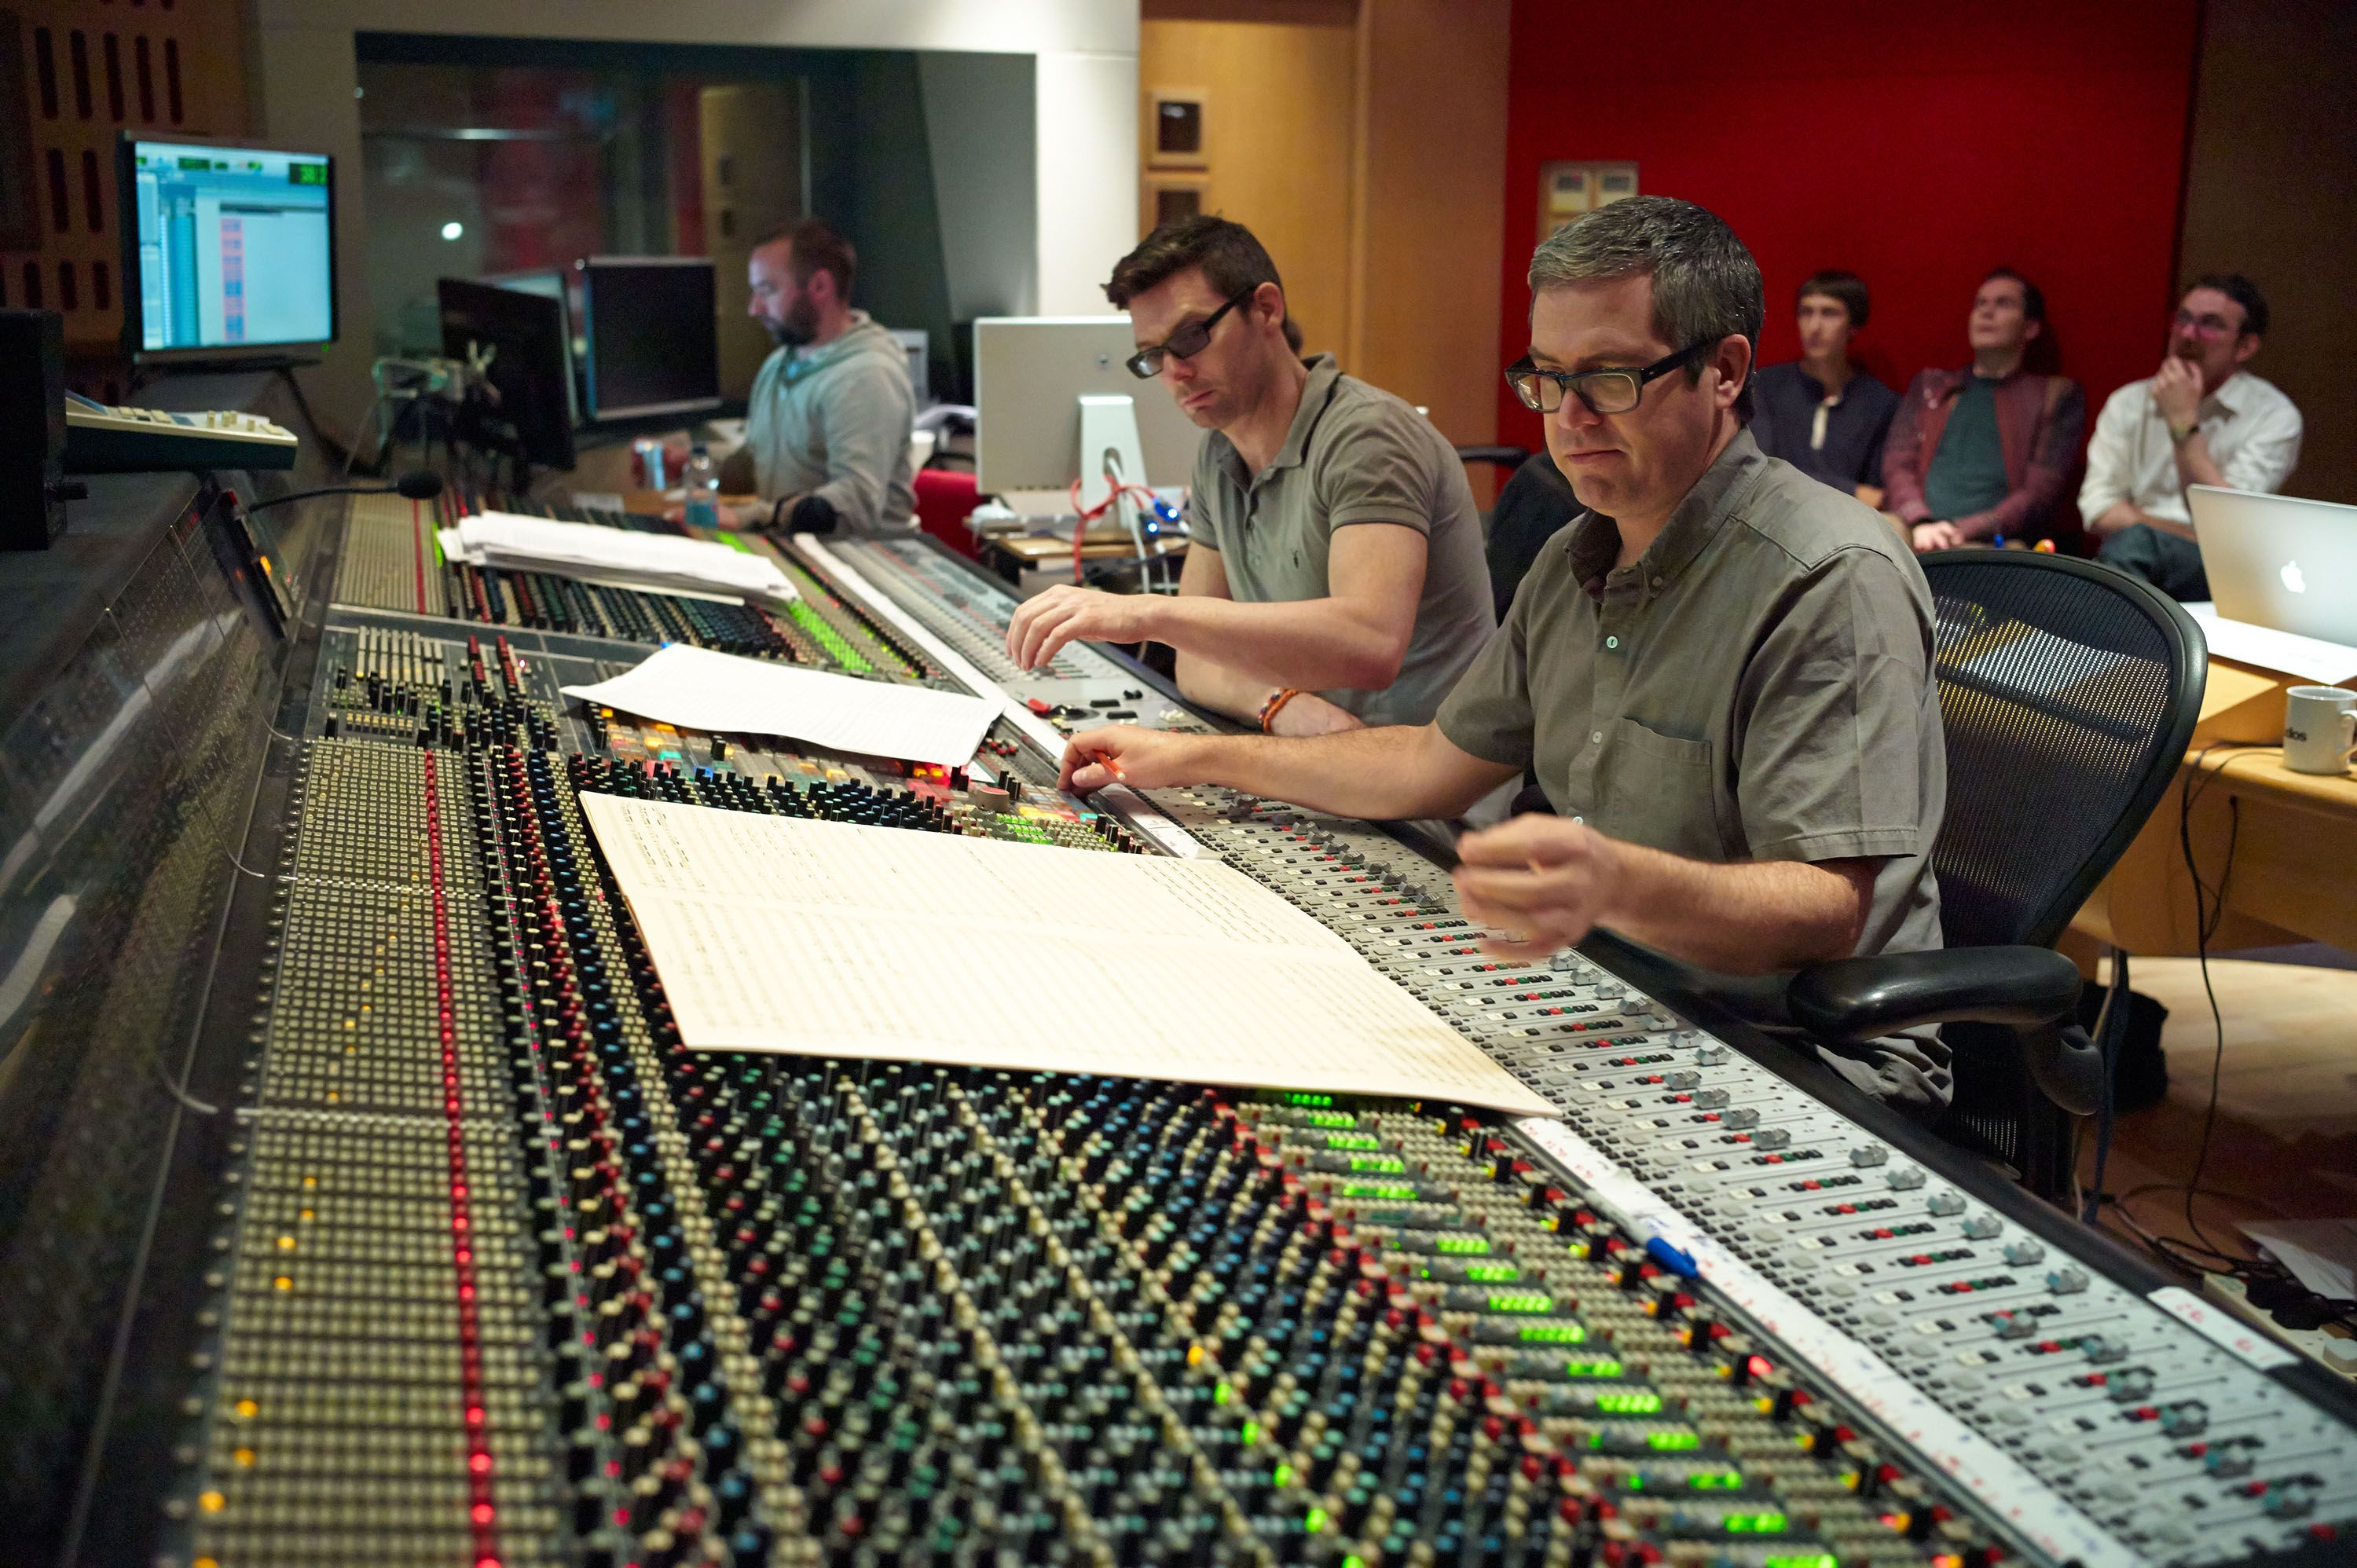 How to train your dragon 2 interview composer john powell collider how to train your dragon 2 john powell ccuart Gallery